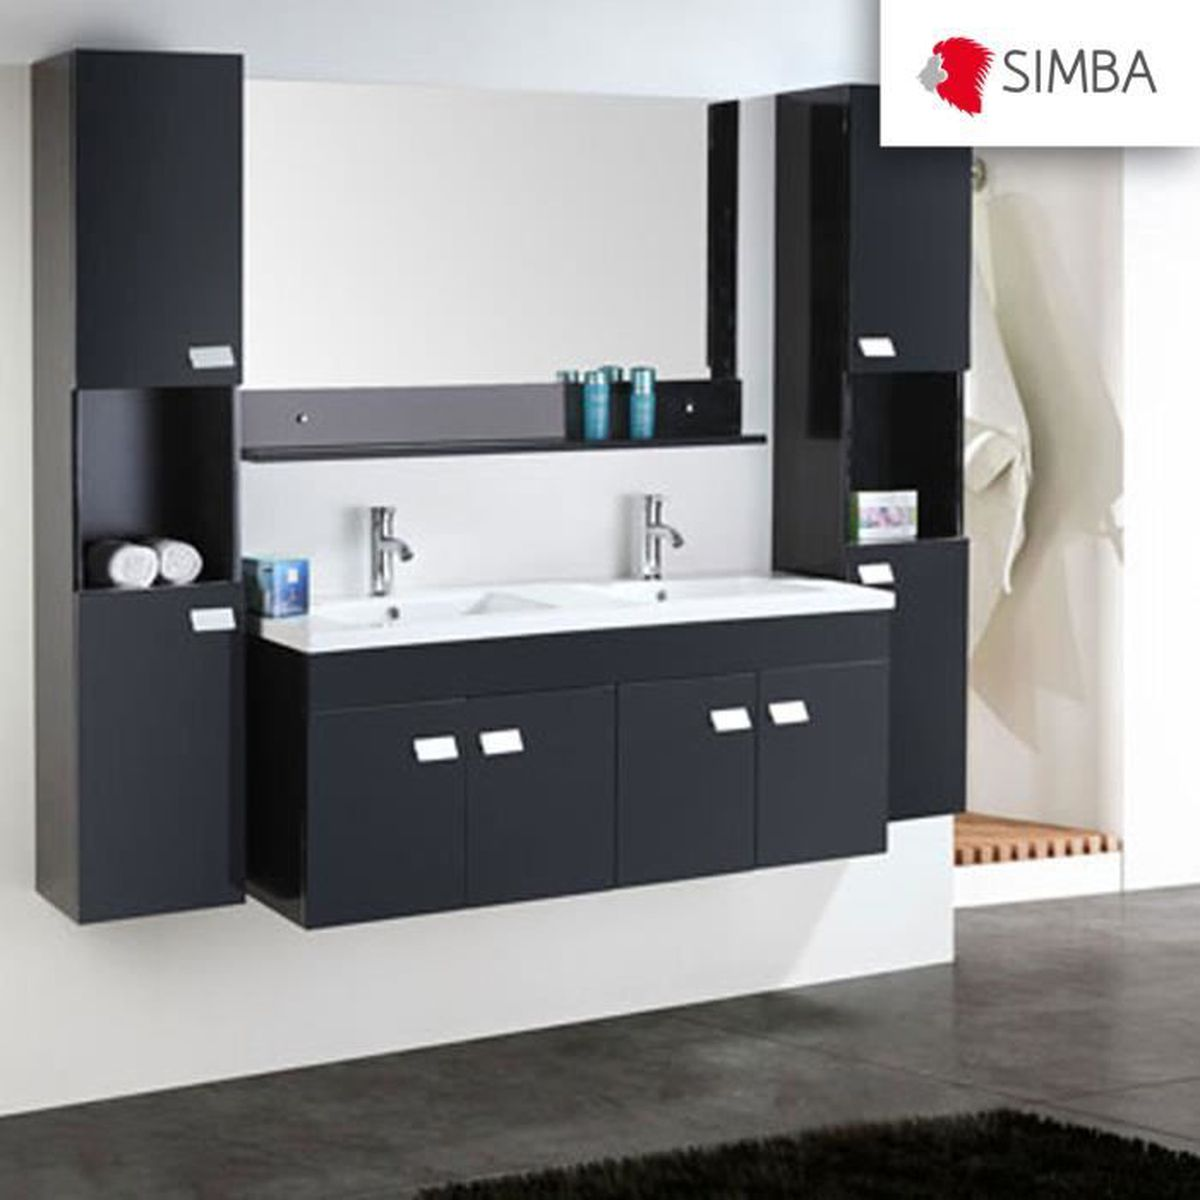 meuble salle de bain avec vasque noir achat vente. Black Bedroom Furniture Sets. Home Design Ideas